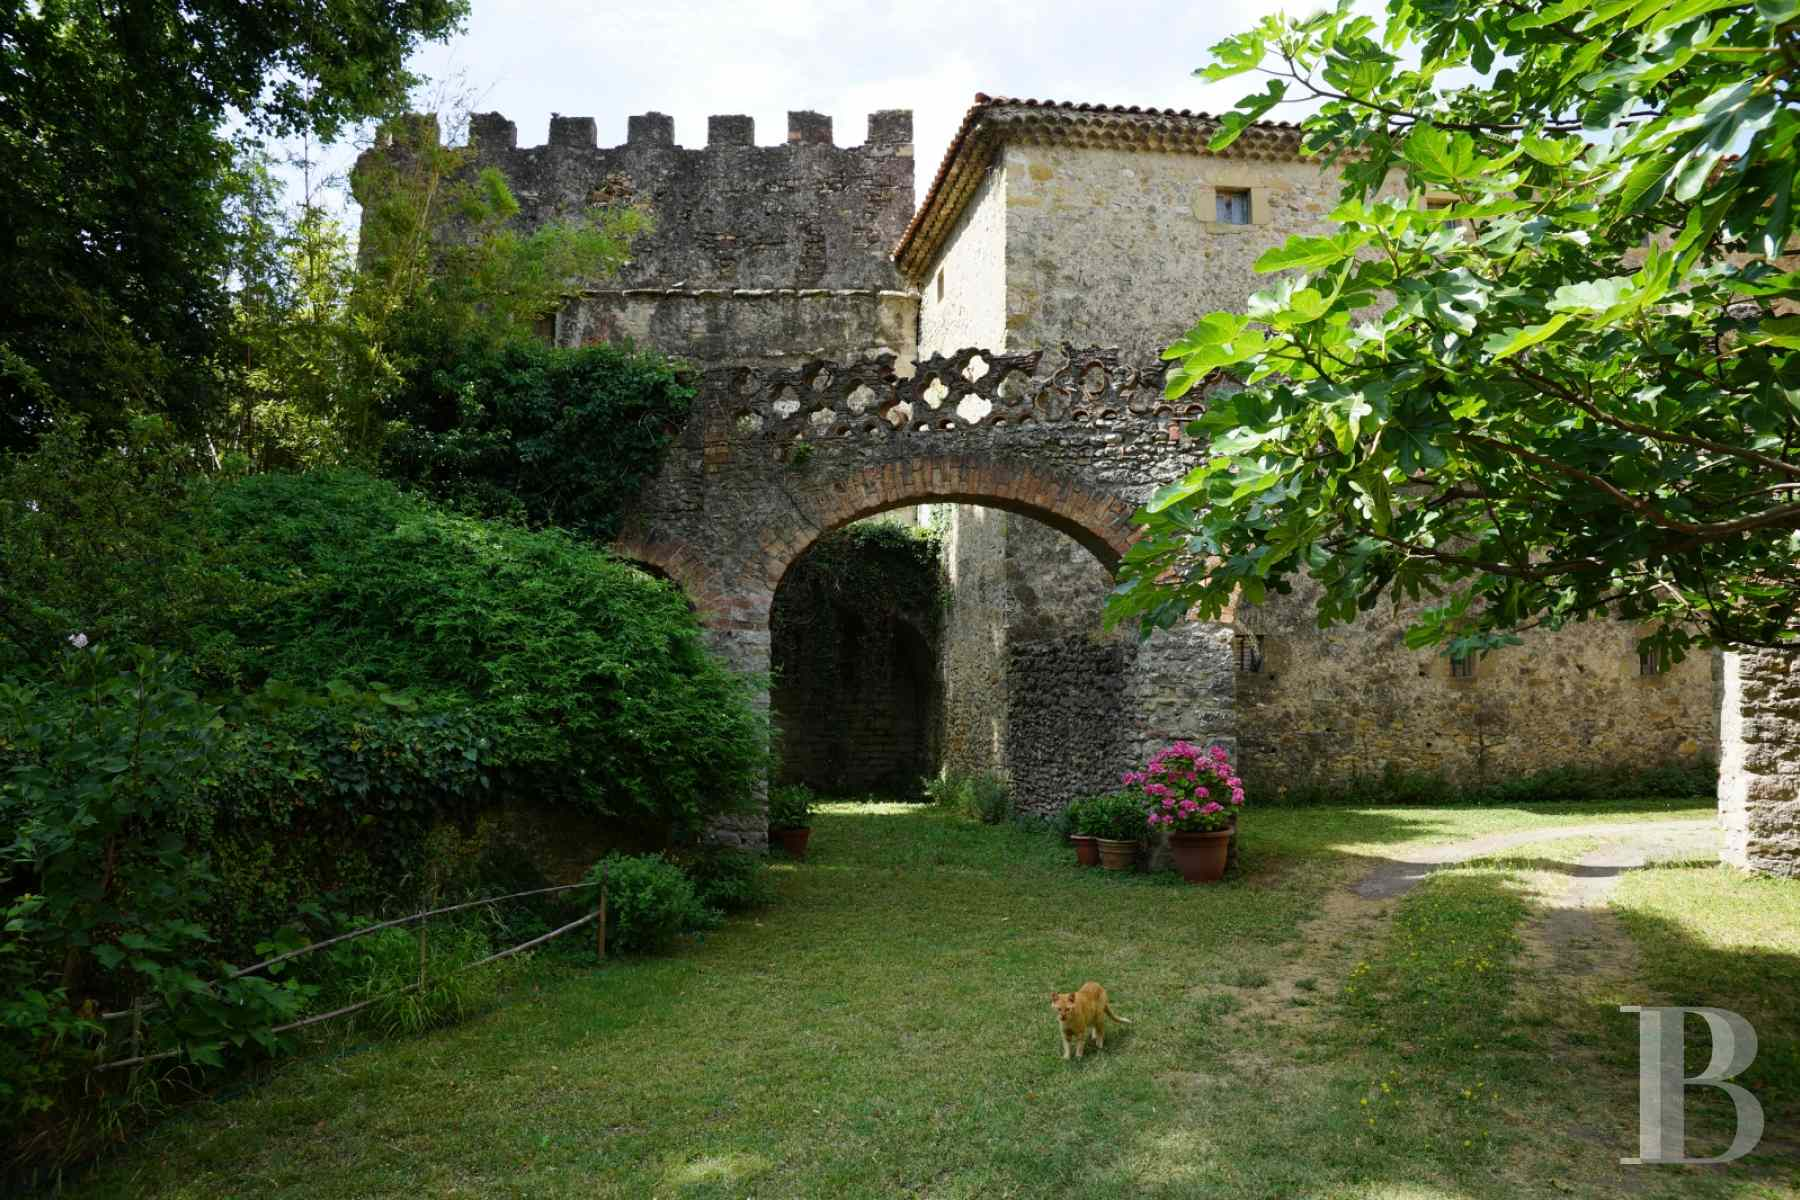 chateaux for sale France languedoc roussillon 17th century - 11 zoom